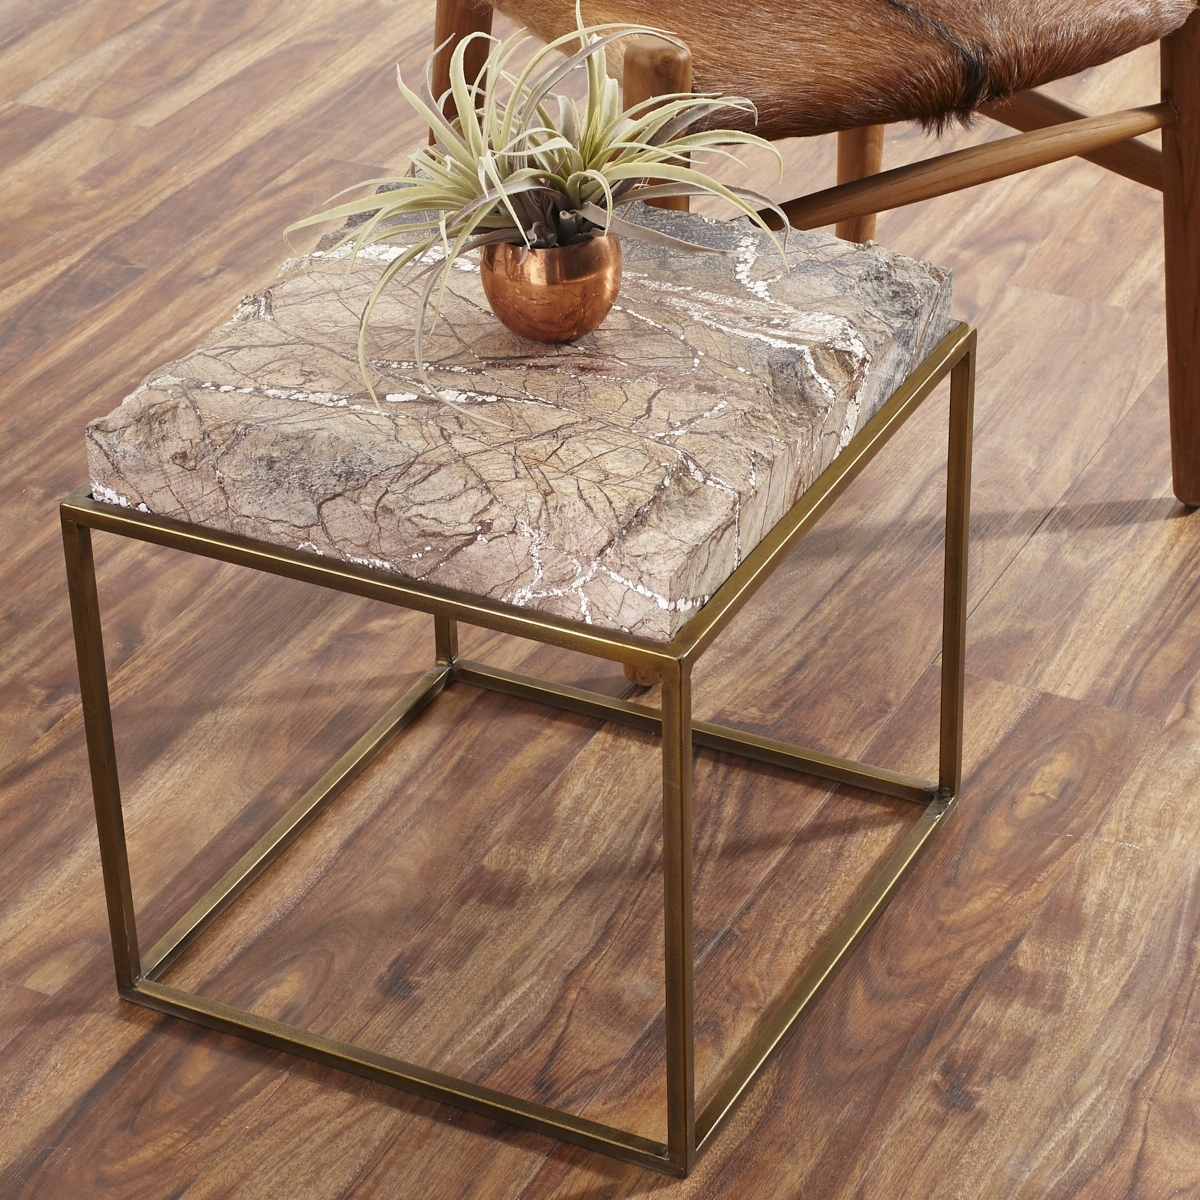 Well Liked Jackson Marble Side Tables Throughout Iron Table With Chiseled Marble Stone Top (View 13 of 20)